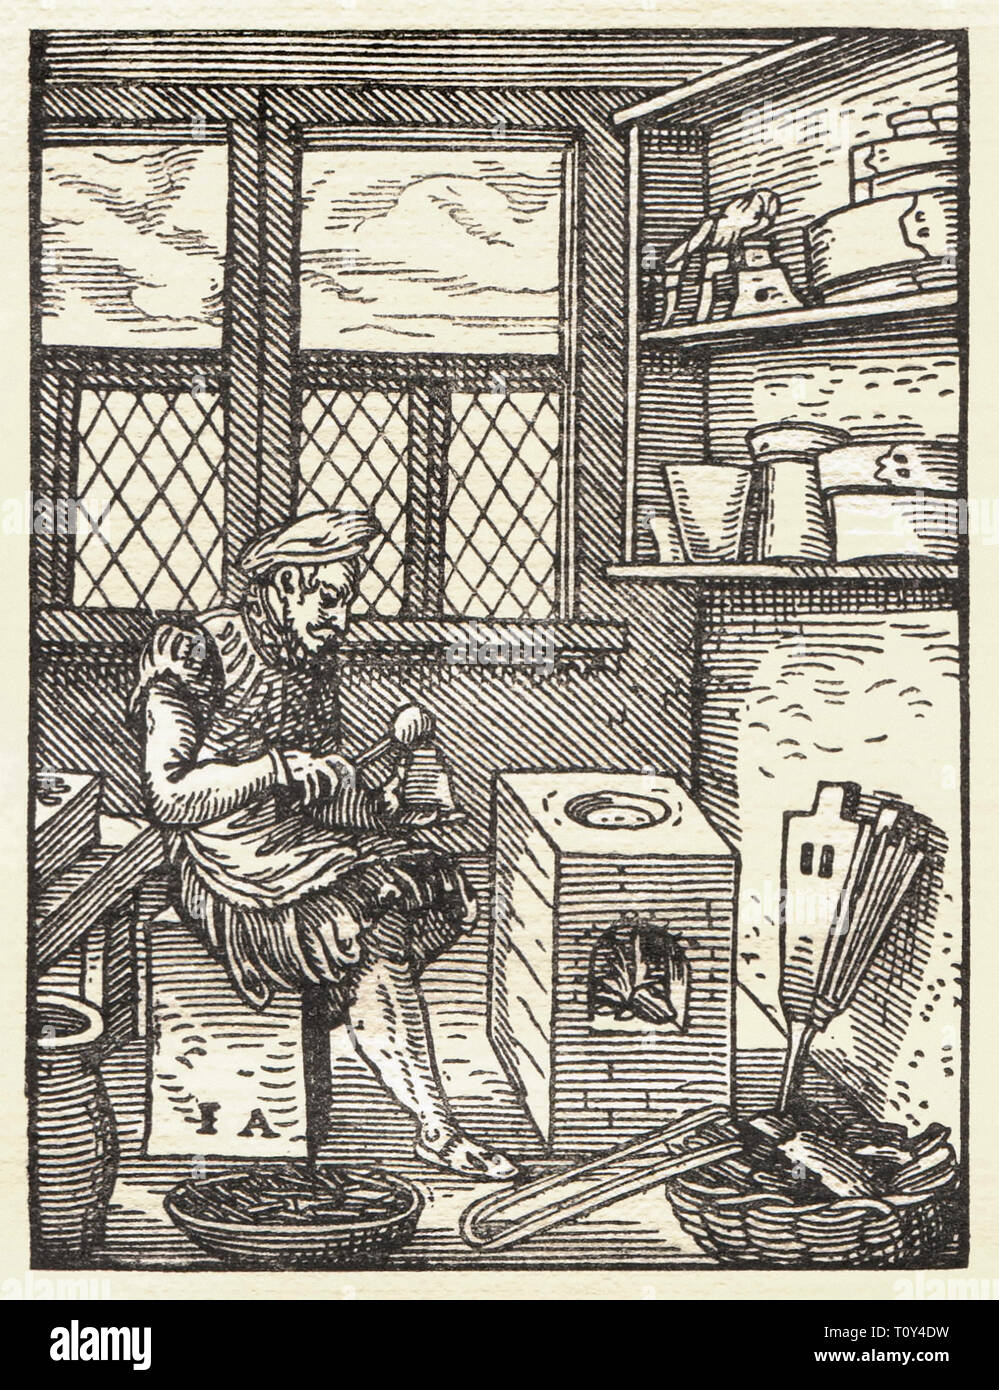 A punchcutter preparing a letter punch to produce typeface for use in letterpress printing. Woodcut by Jost Amman (1539-1591) from Das Ständebuch published in 1568. - Stock Image